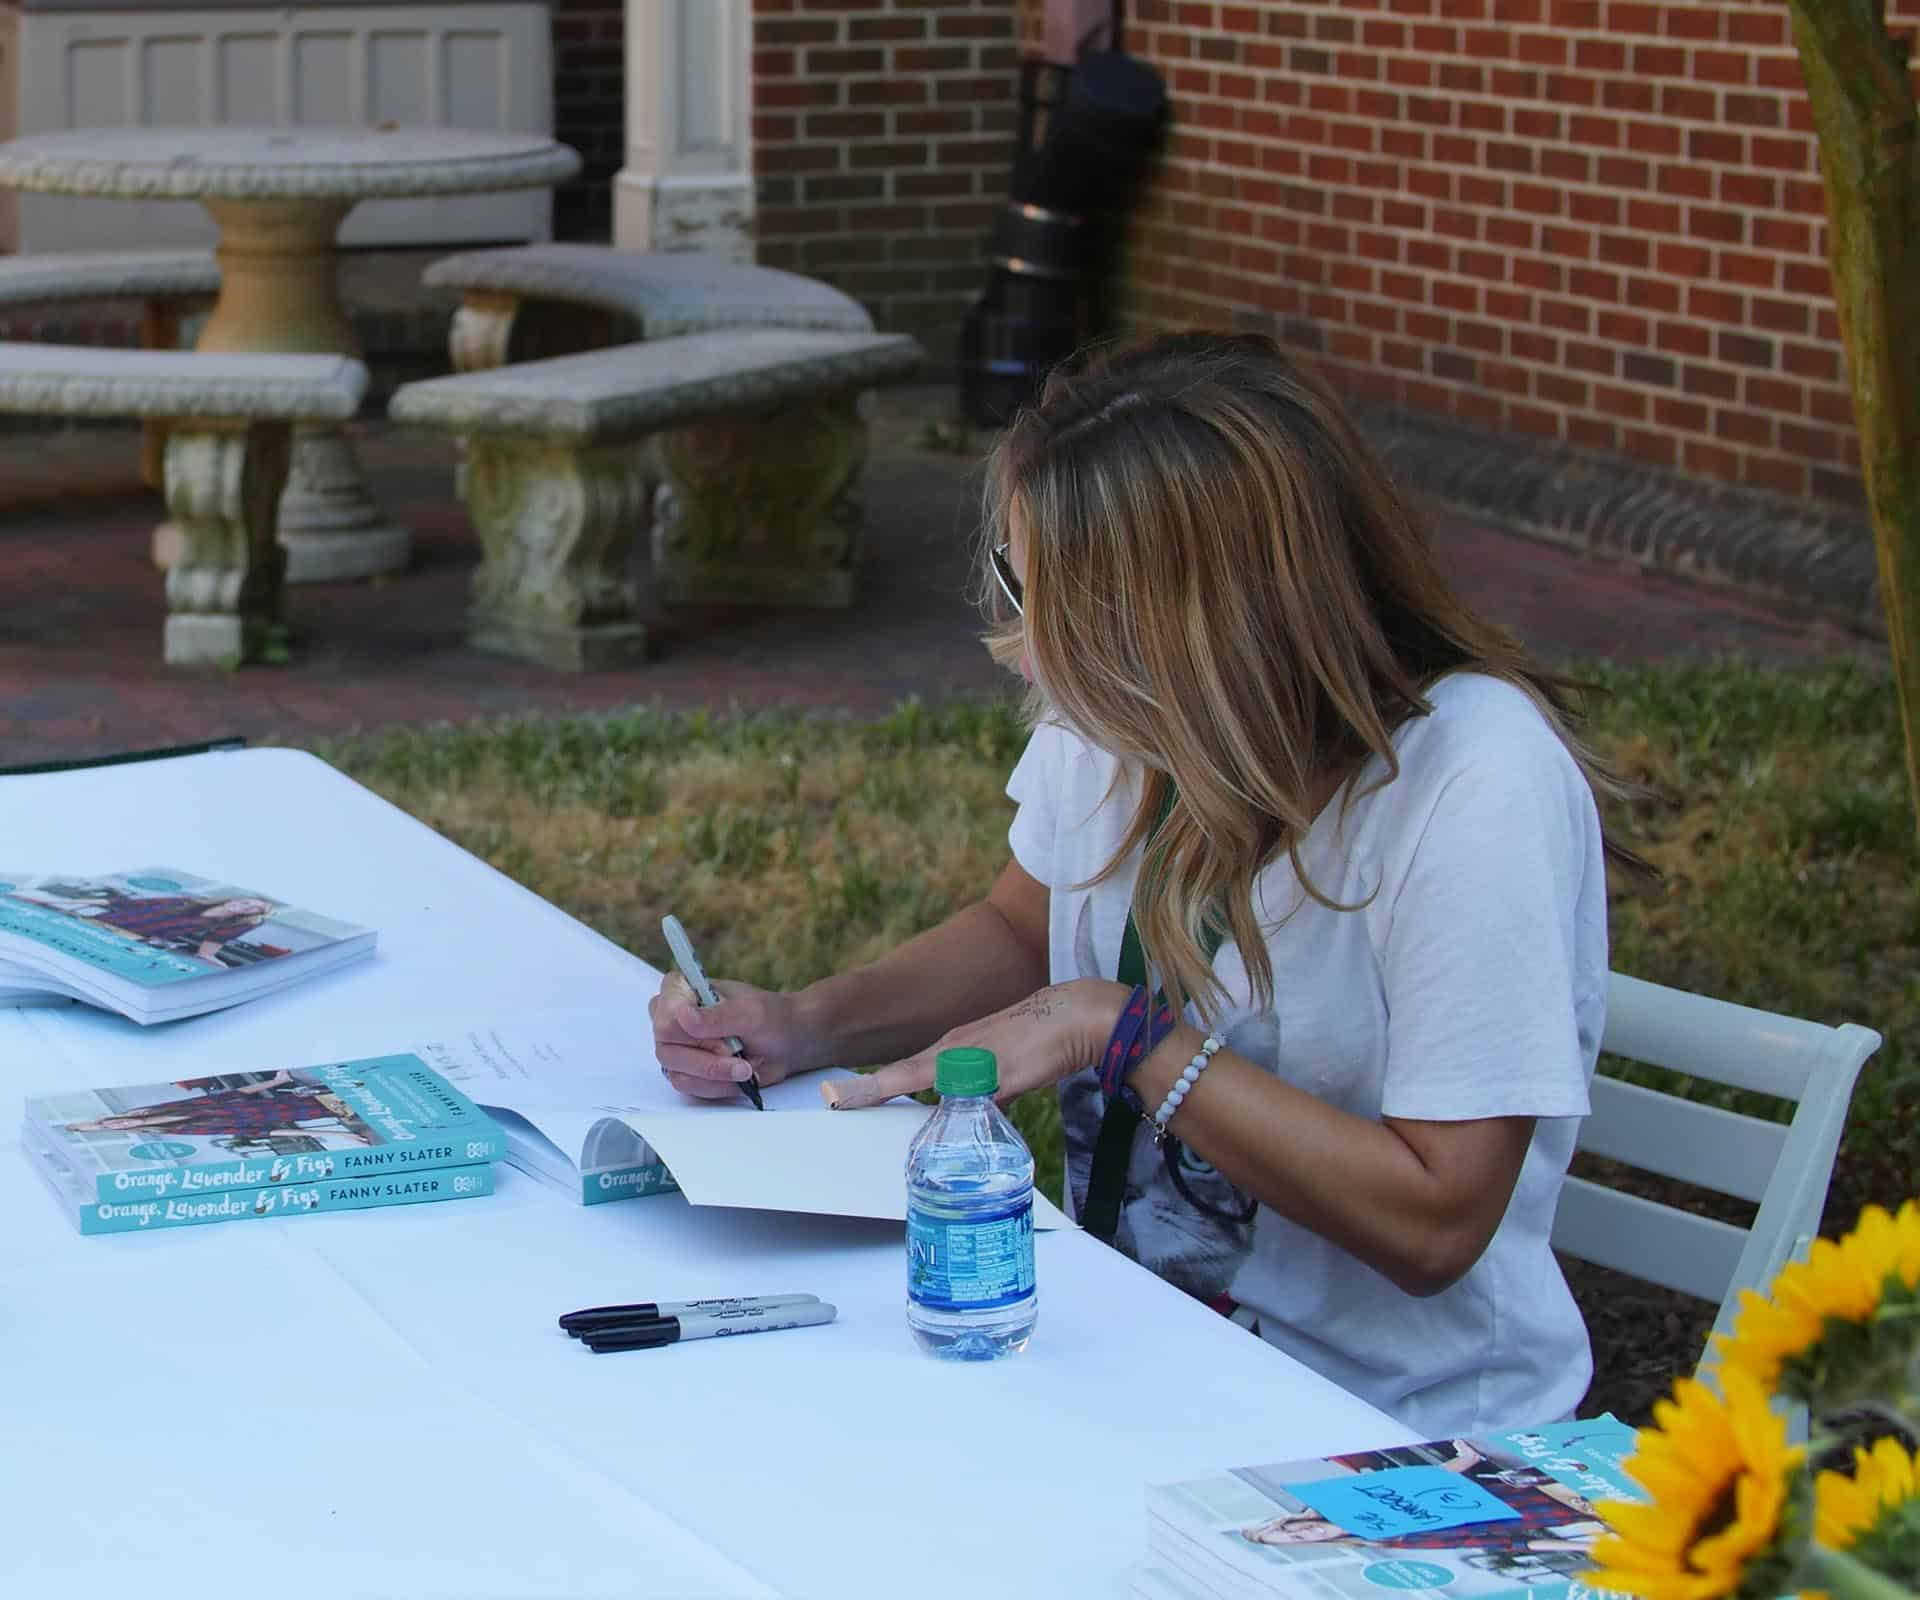 Alumna Fanny Slater returns to campus to promote her cookbook.